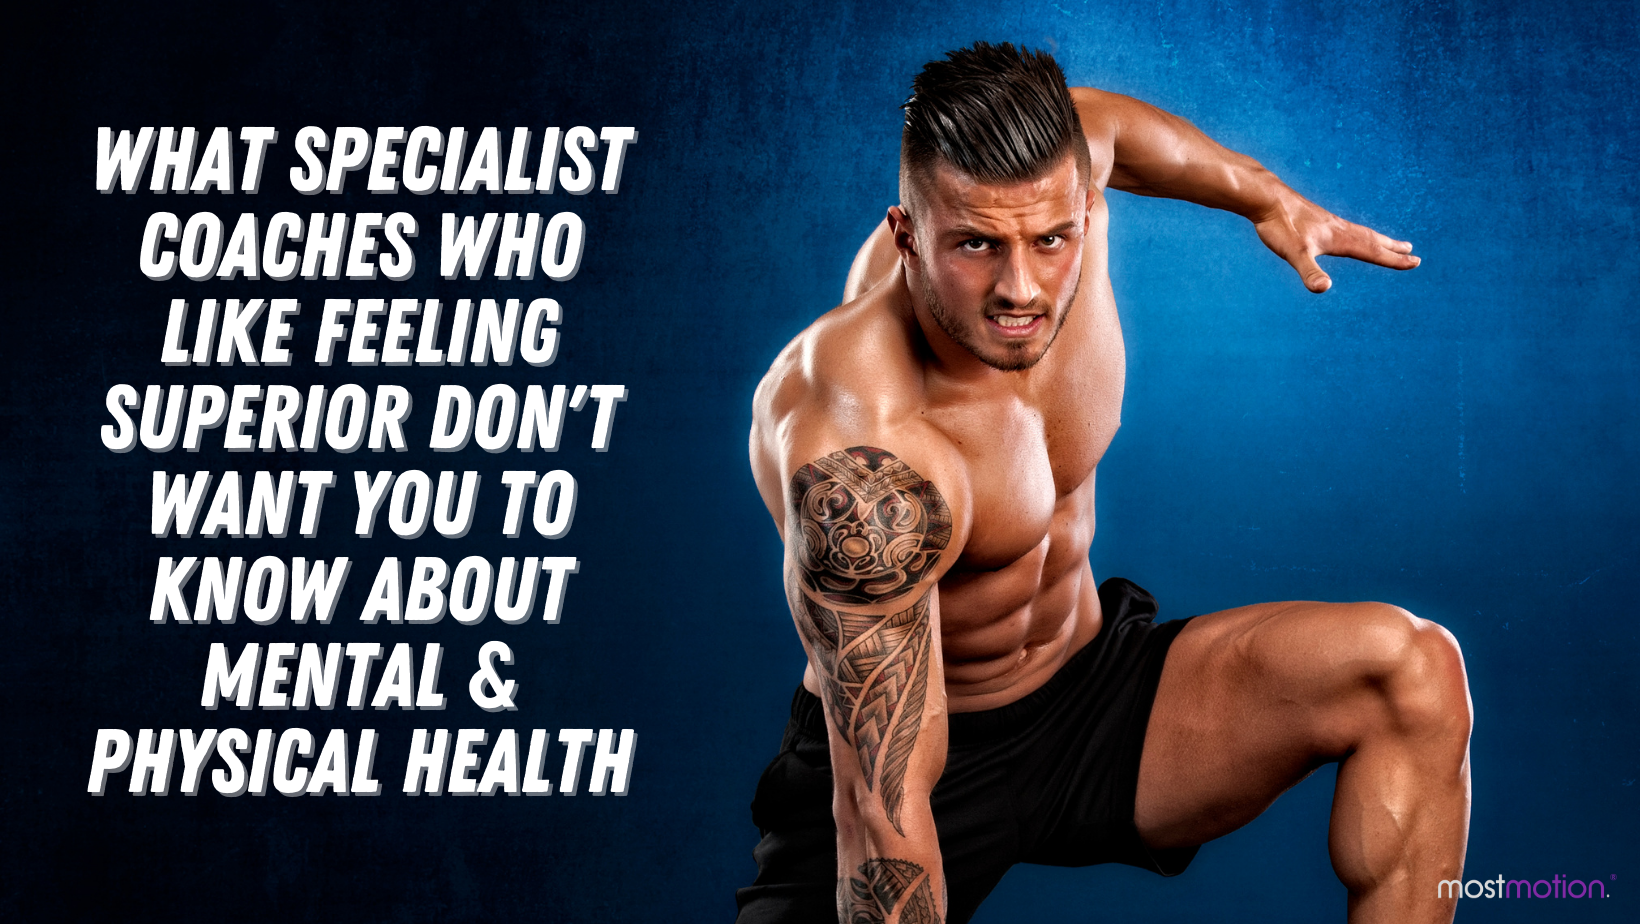 What Specialist Coaches Who Like Feeling Superior Don't Want You to Know About Mental & Physical Health